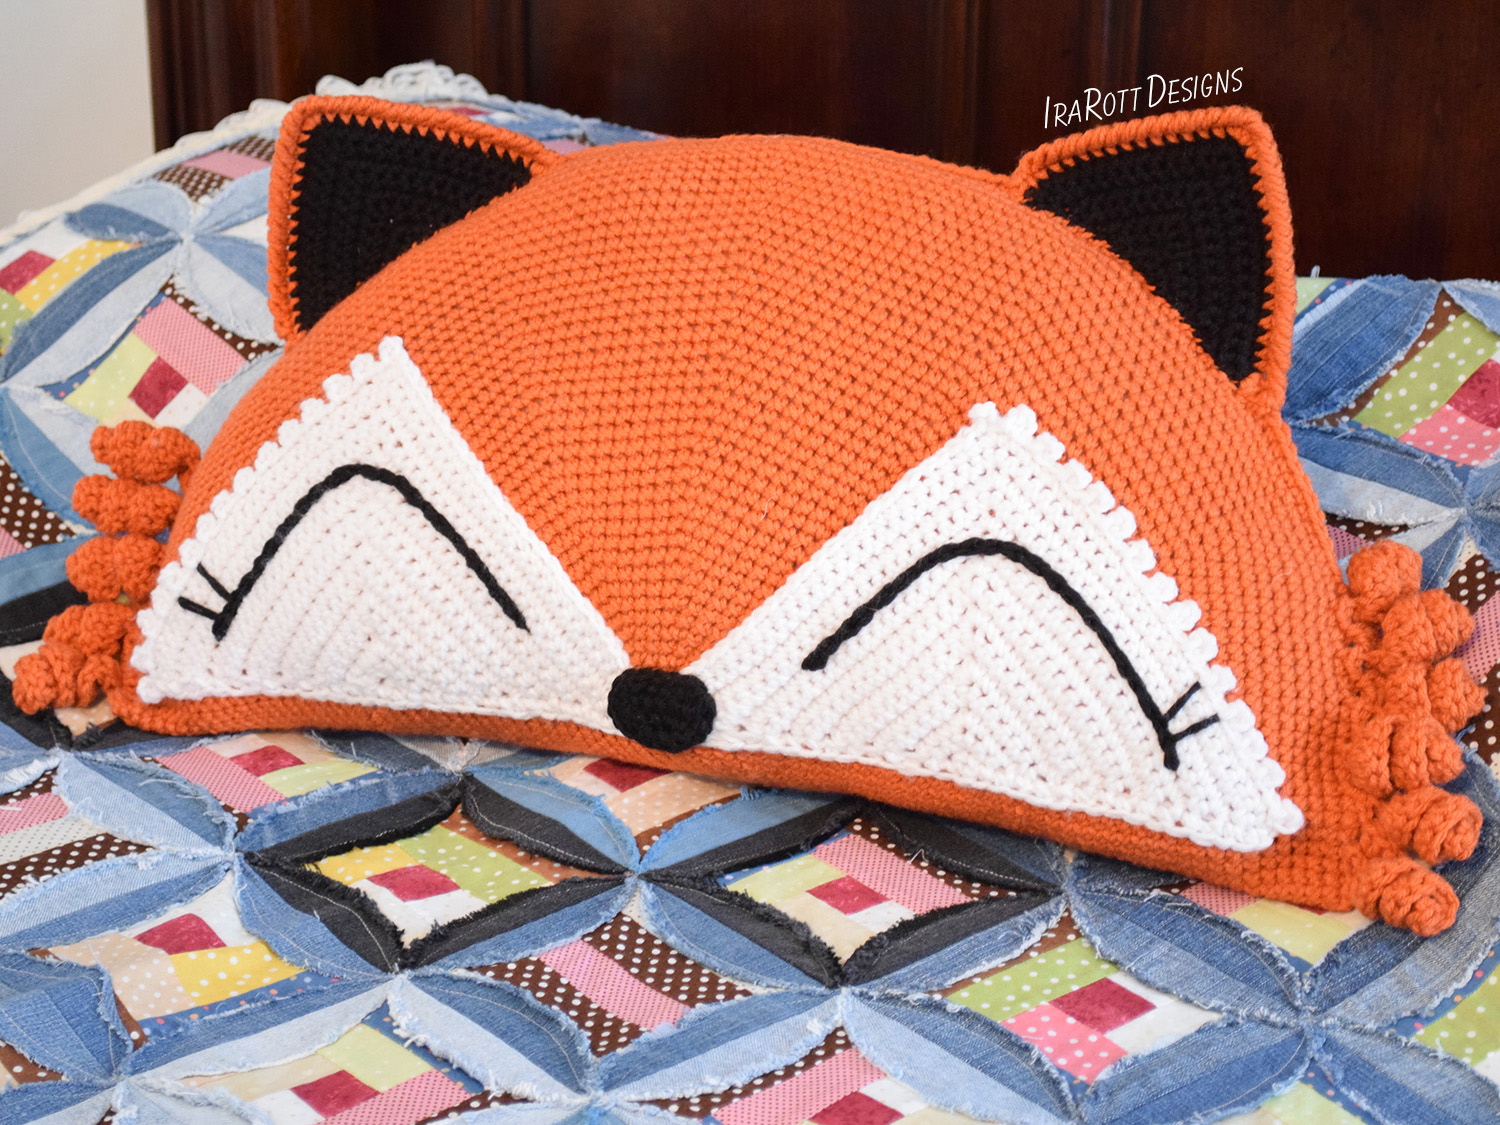 Crochet pattern PDF for making an adorable fox animal pillow or cushion by IraRott